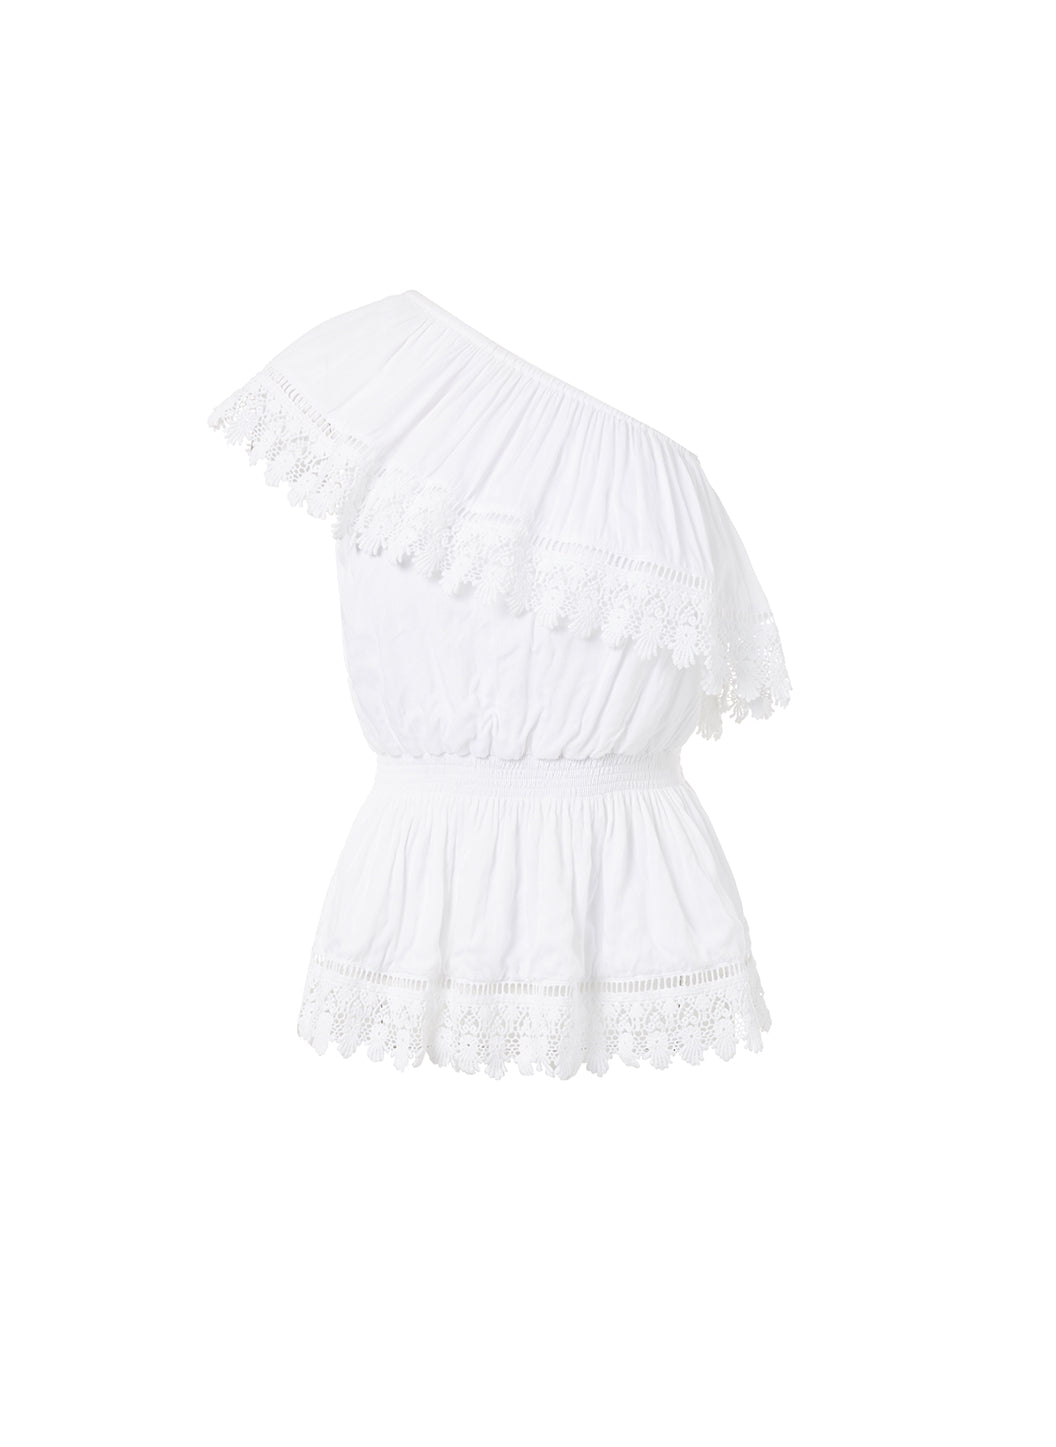 Joanna White One Shoulder Embroidered Frill Top  - Melissa Odabash Beachwear